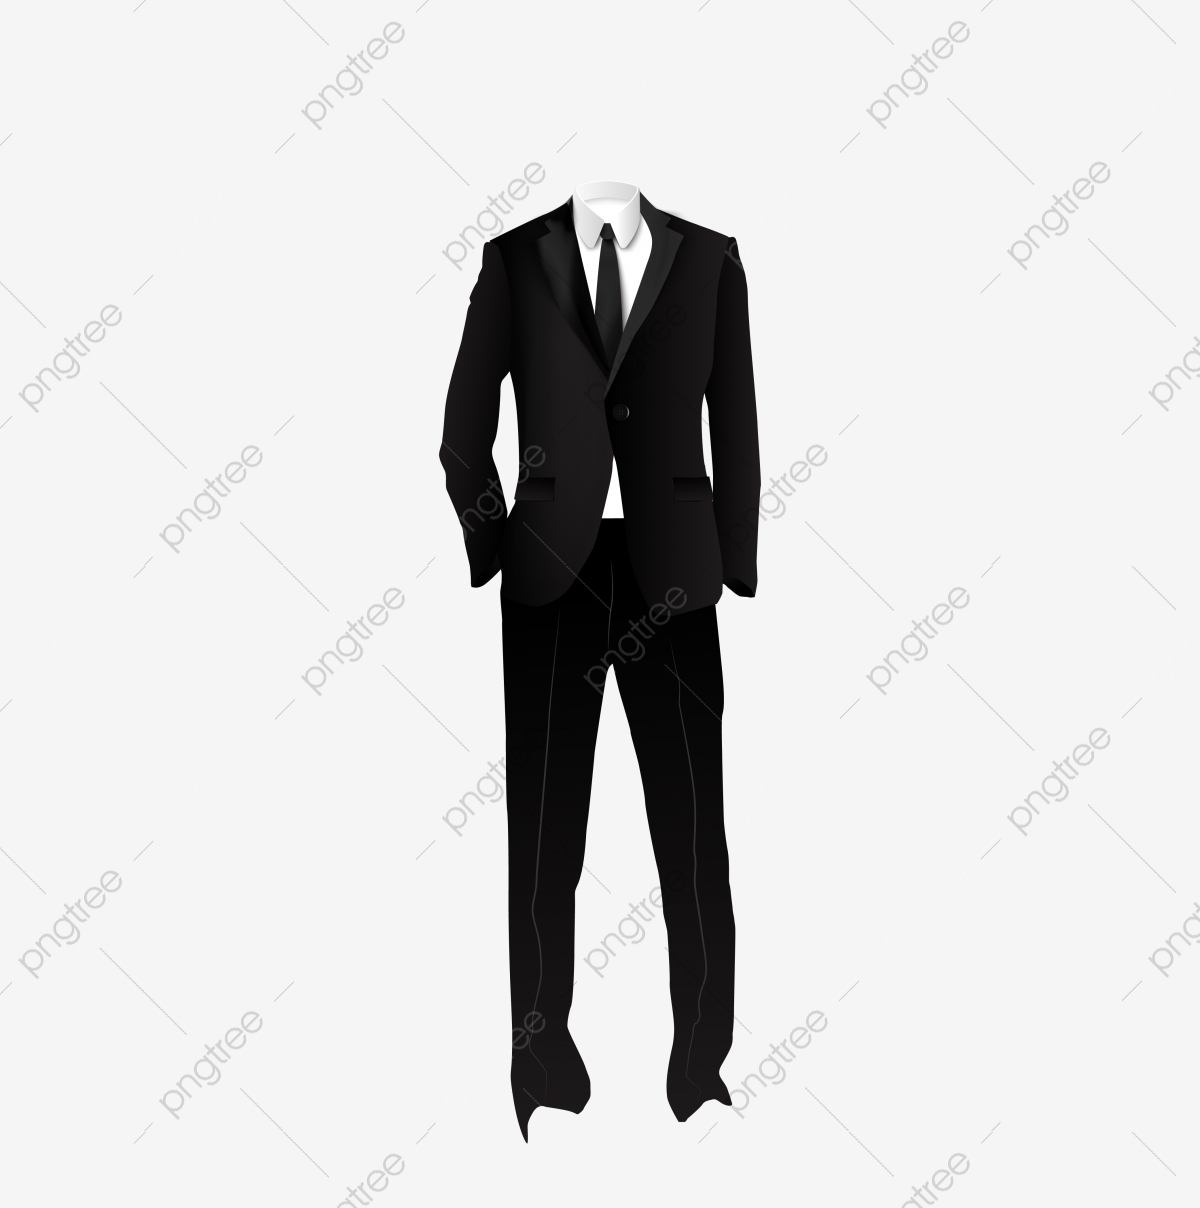 Free Cartoon Black Suit, Colorful Tie, White Shirt, Yellow